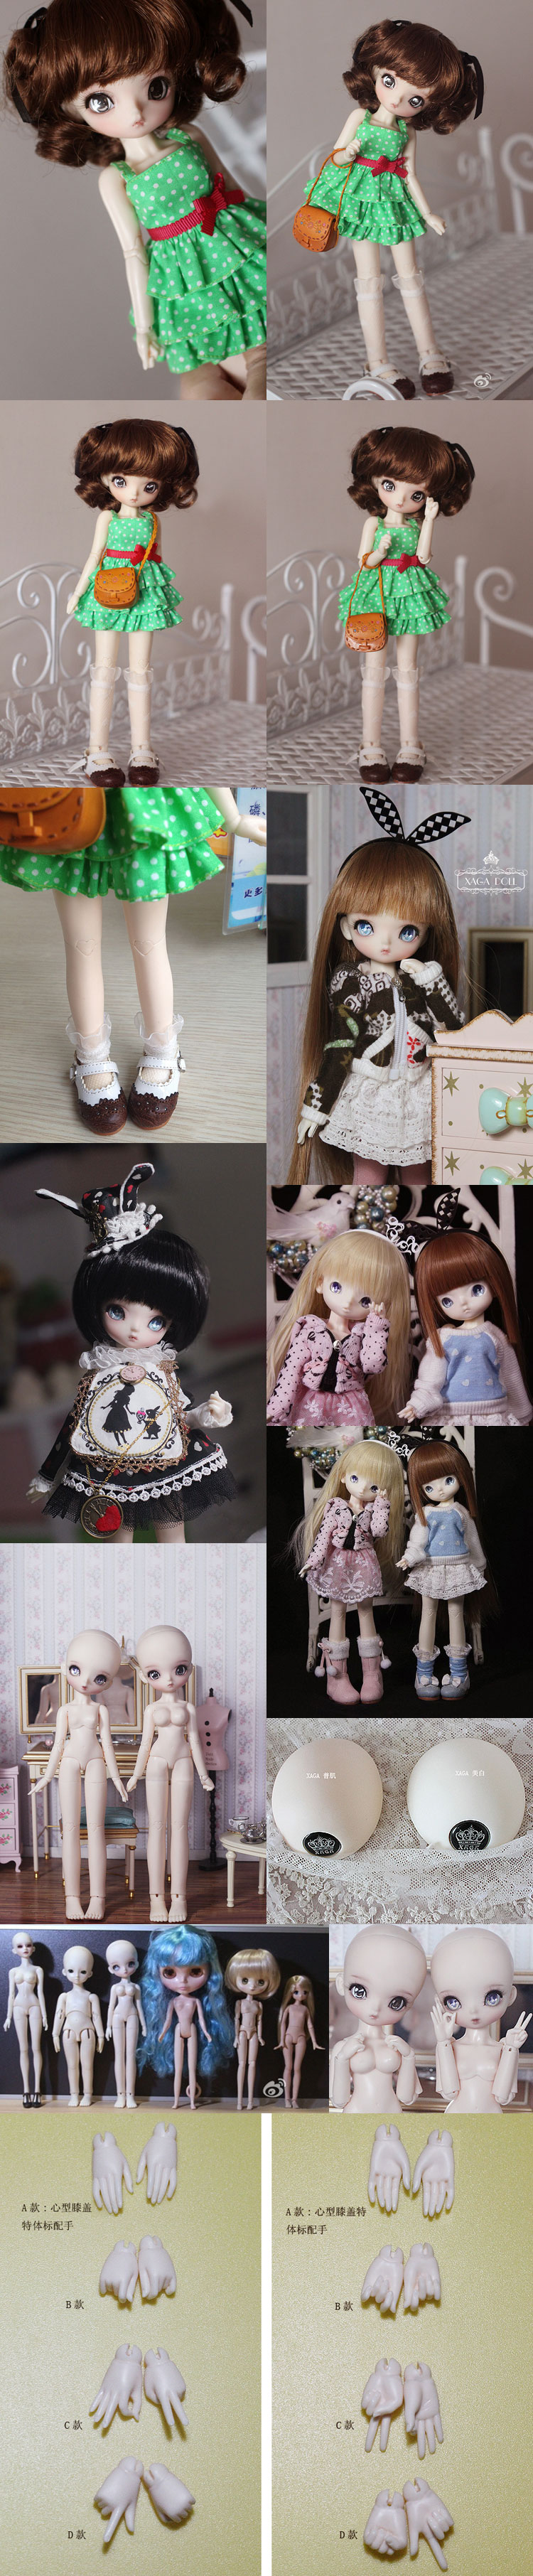 BJD Kimi 27cm Ball-Jointed Doll